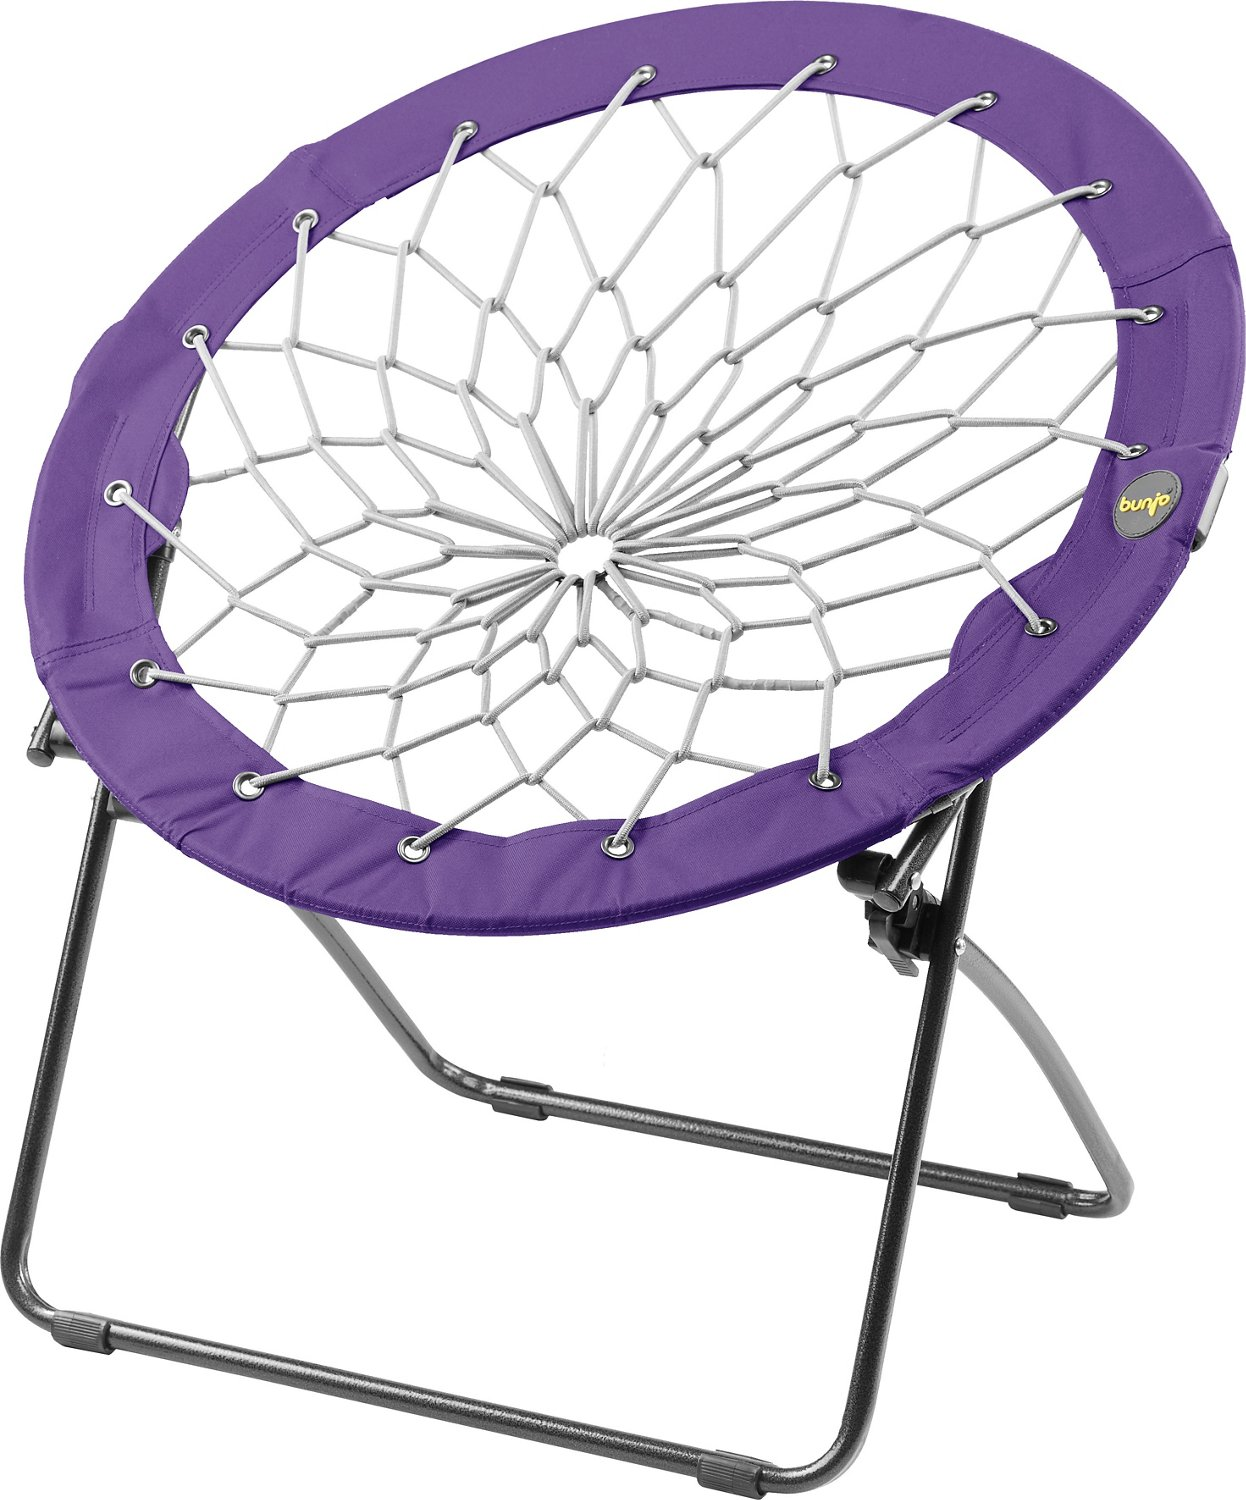 bunjo bungee chair academy stool synonym round hover click to enlarge